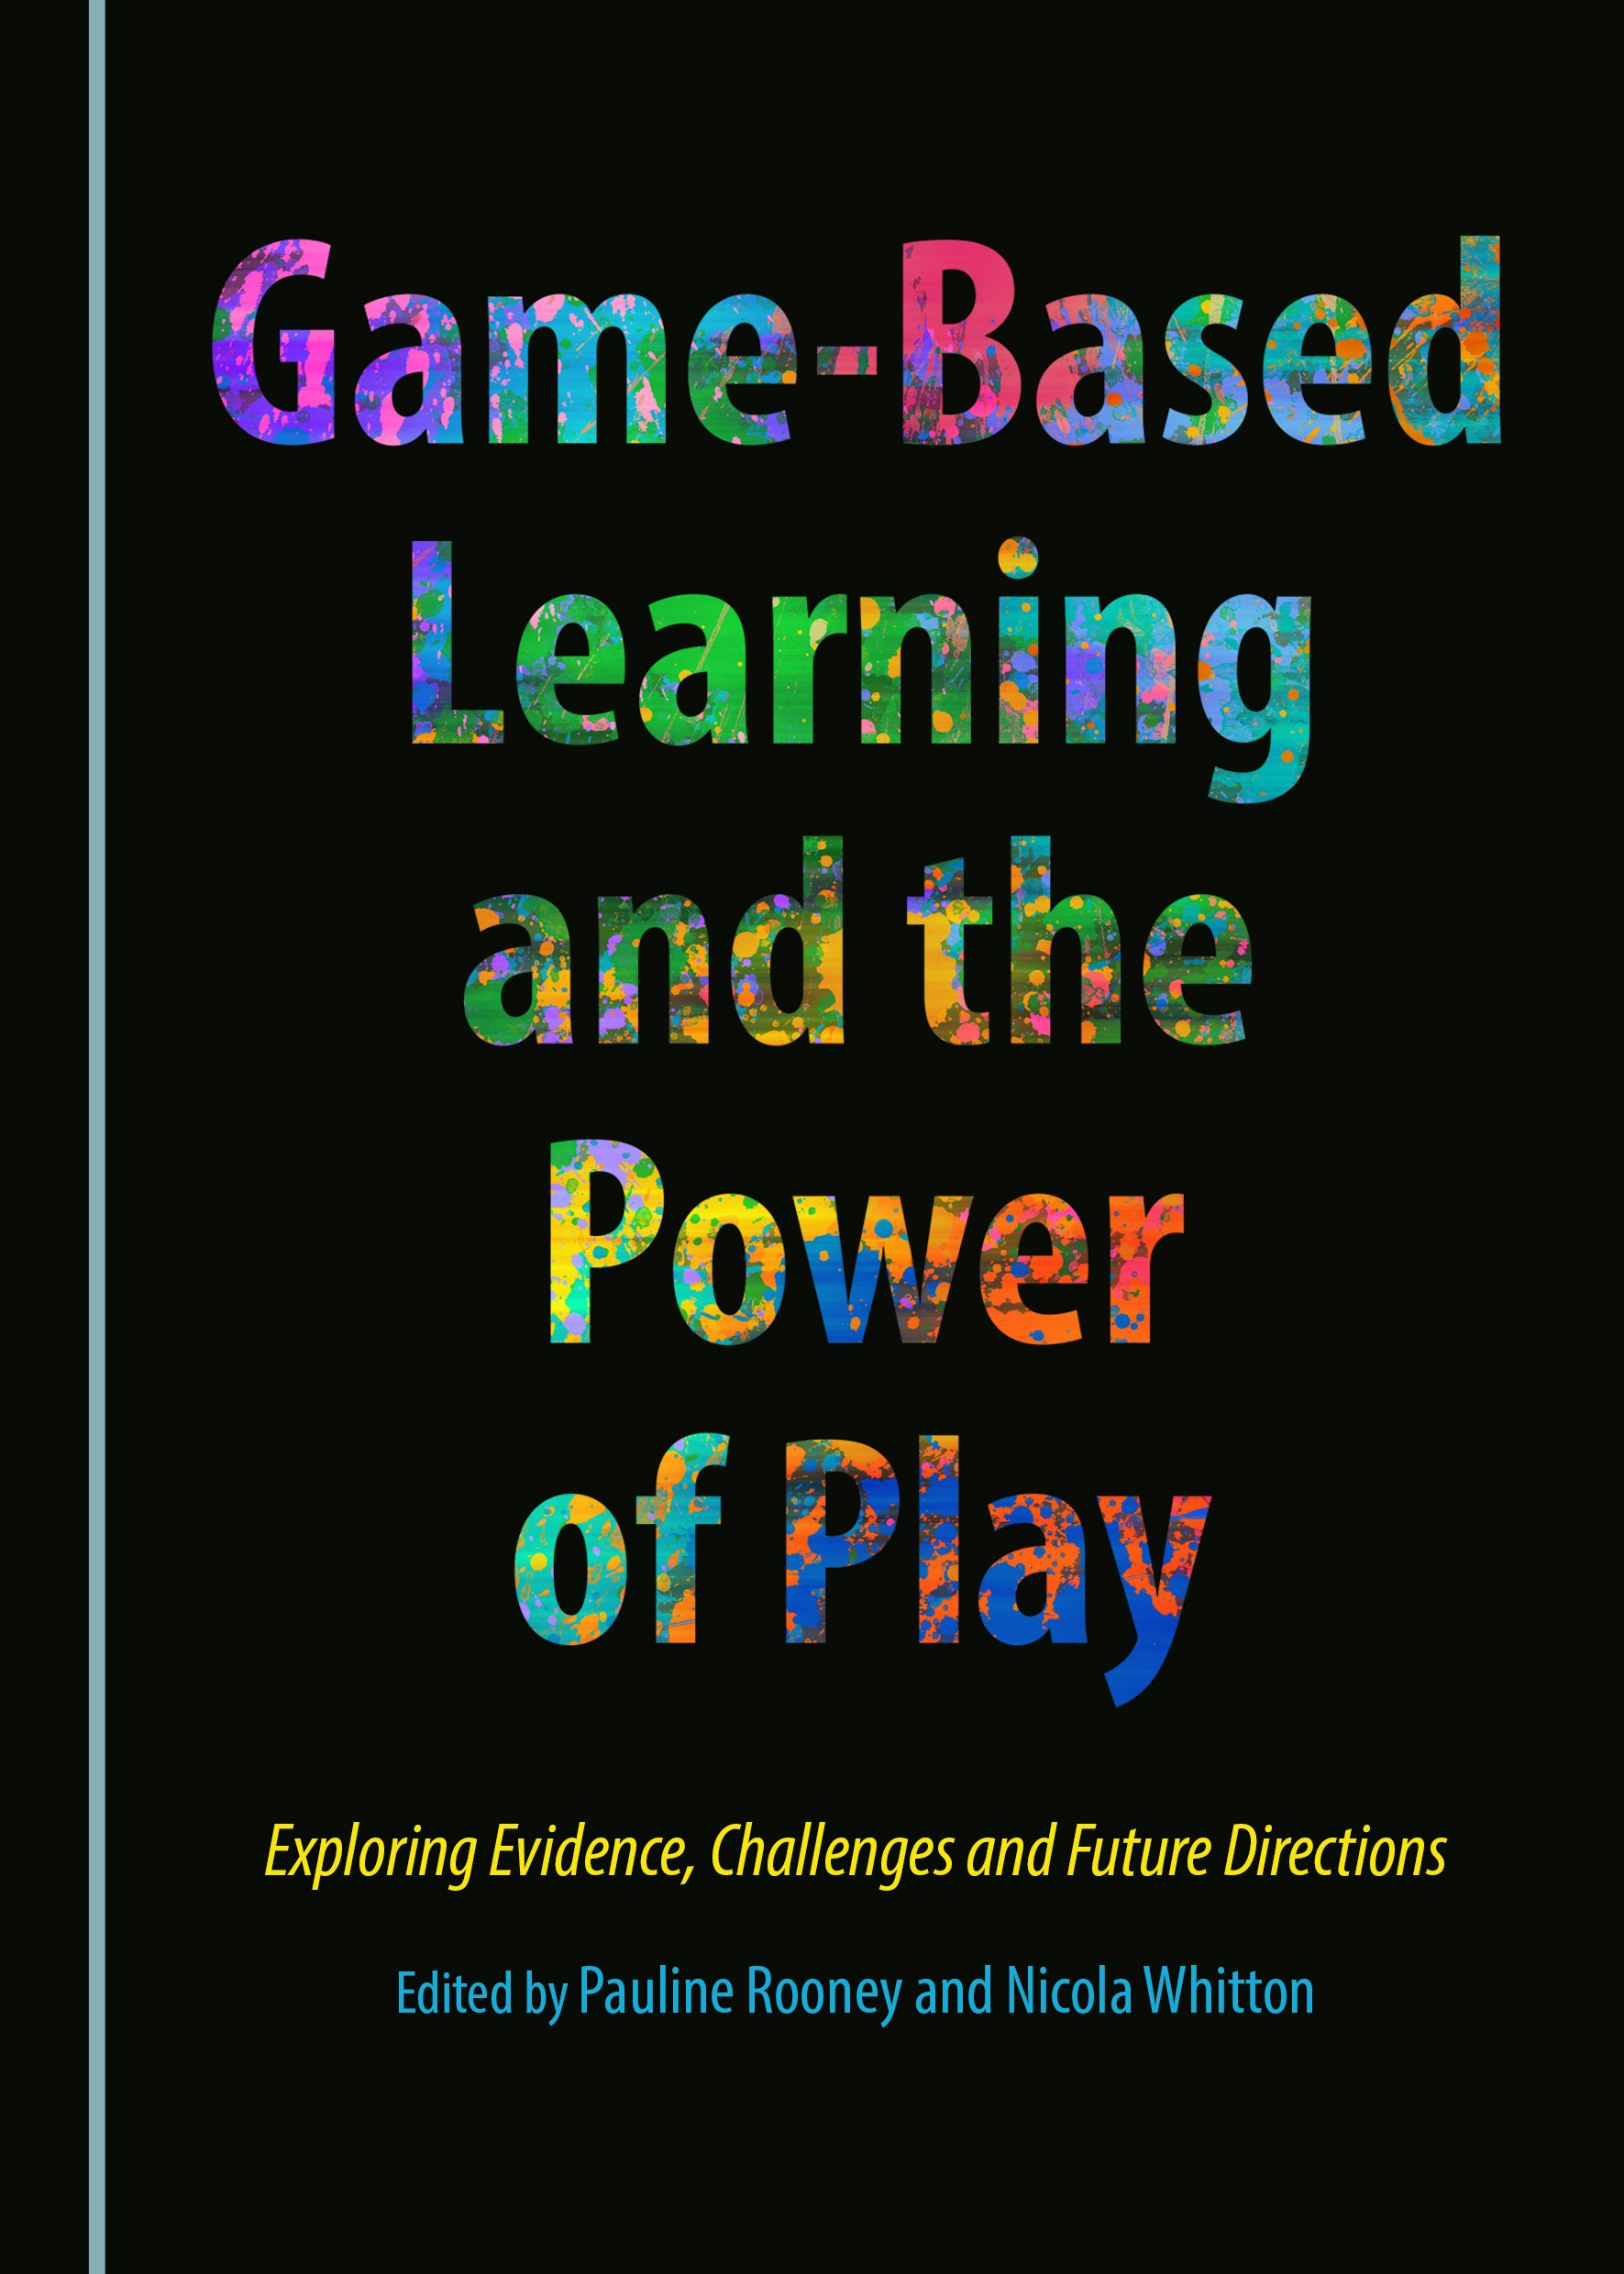 Game-Based Learning and the Power of Play: Exploring Evidence, Challenges and Future Directions